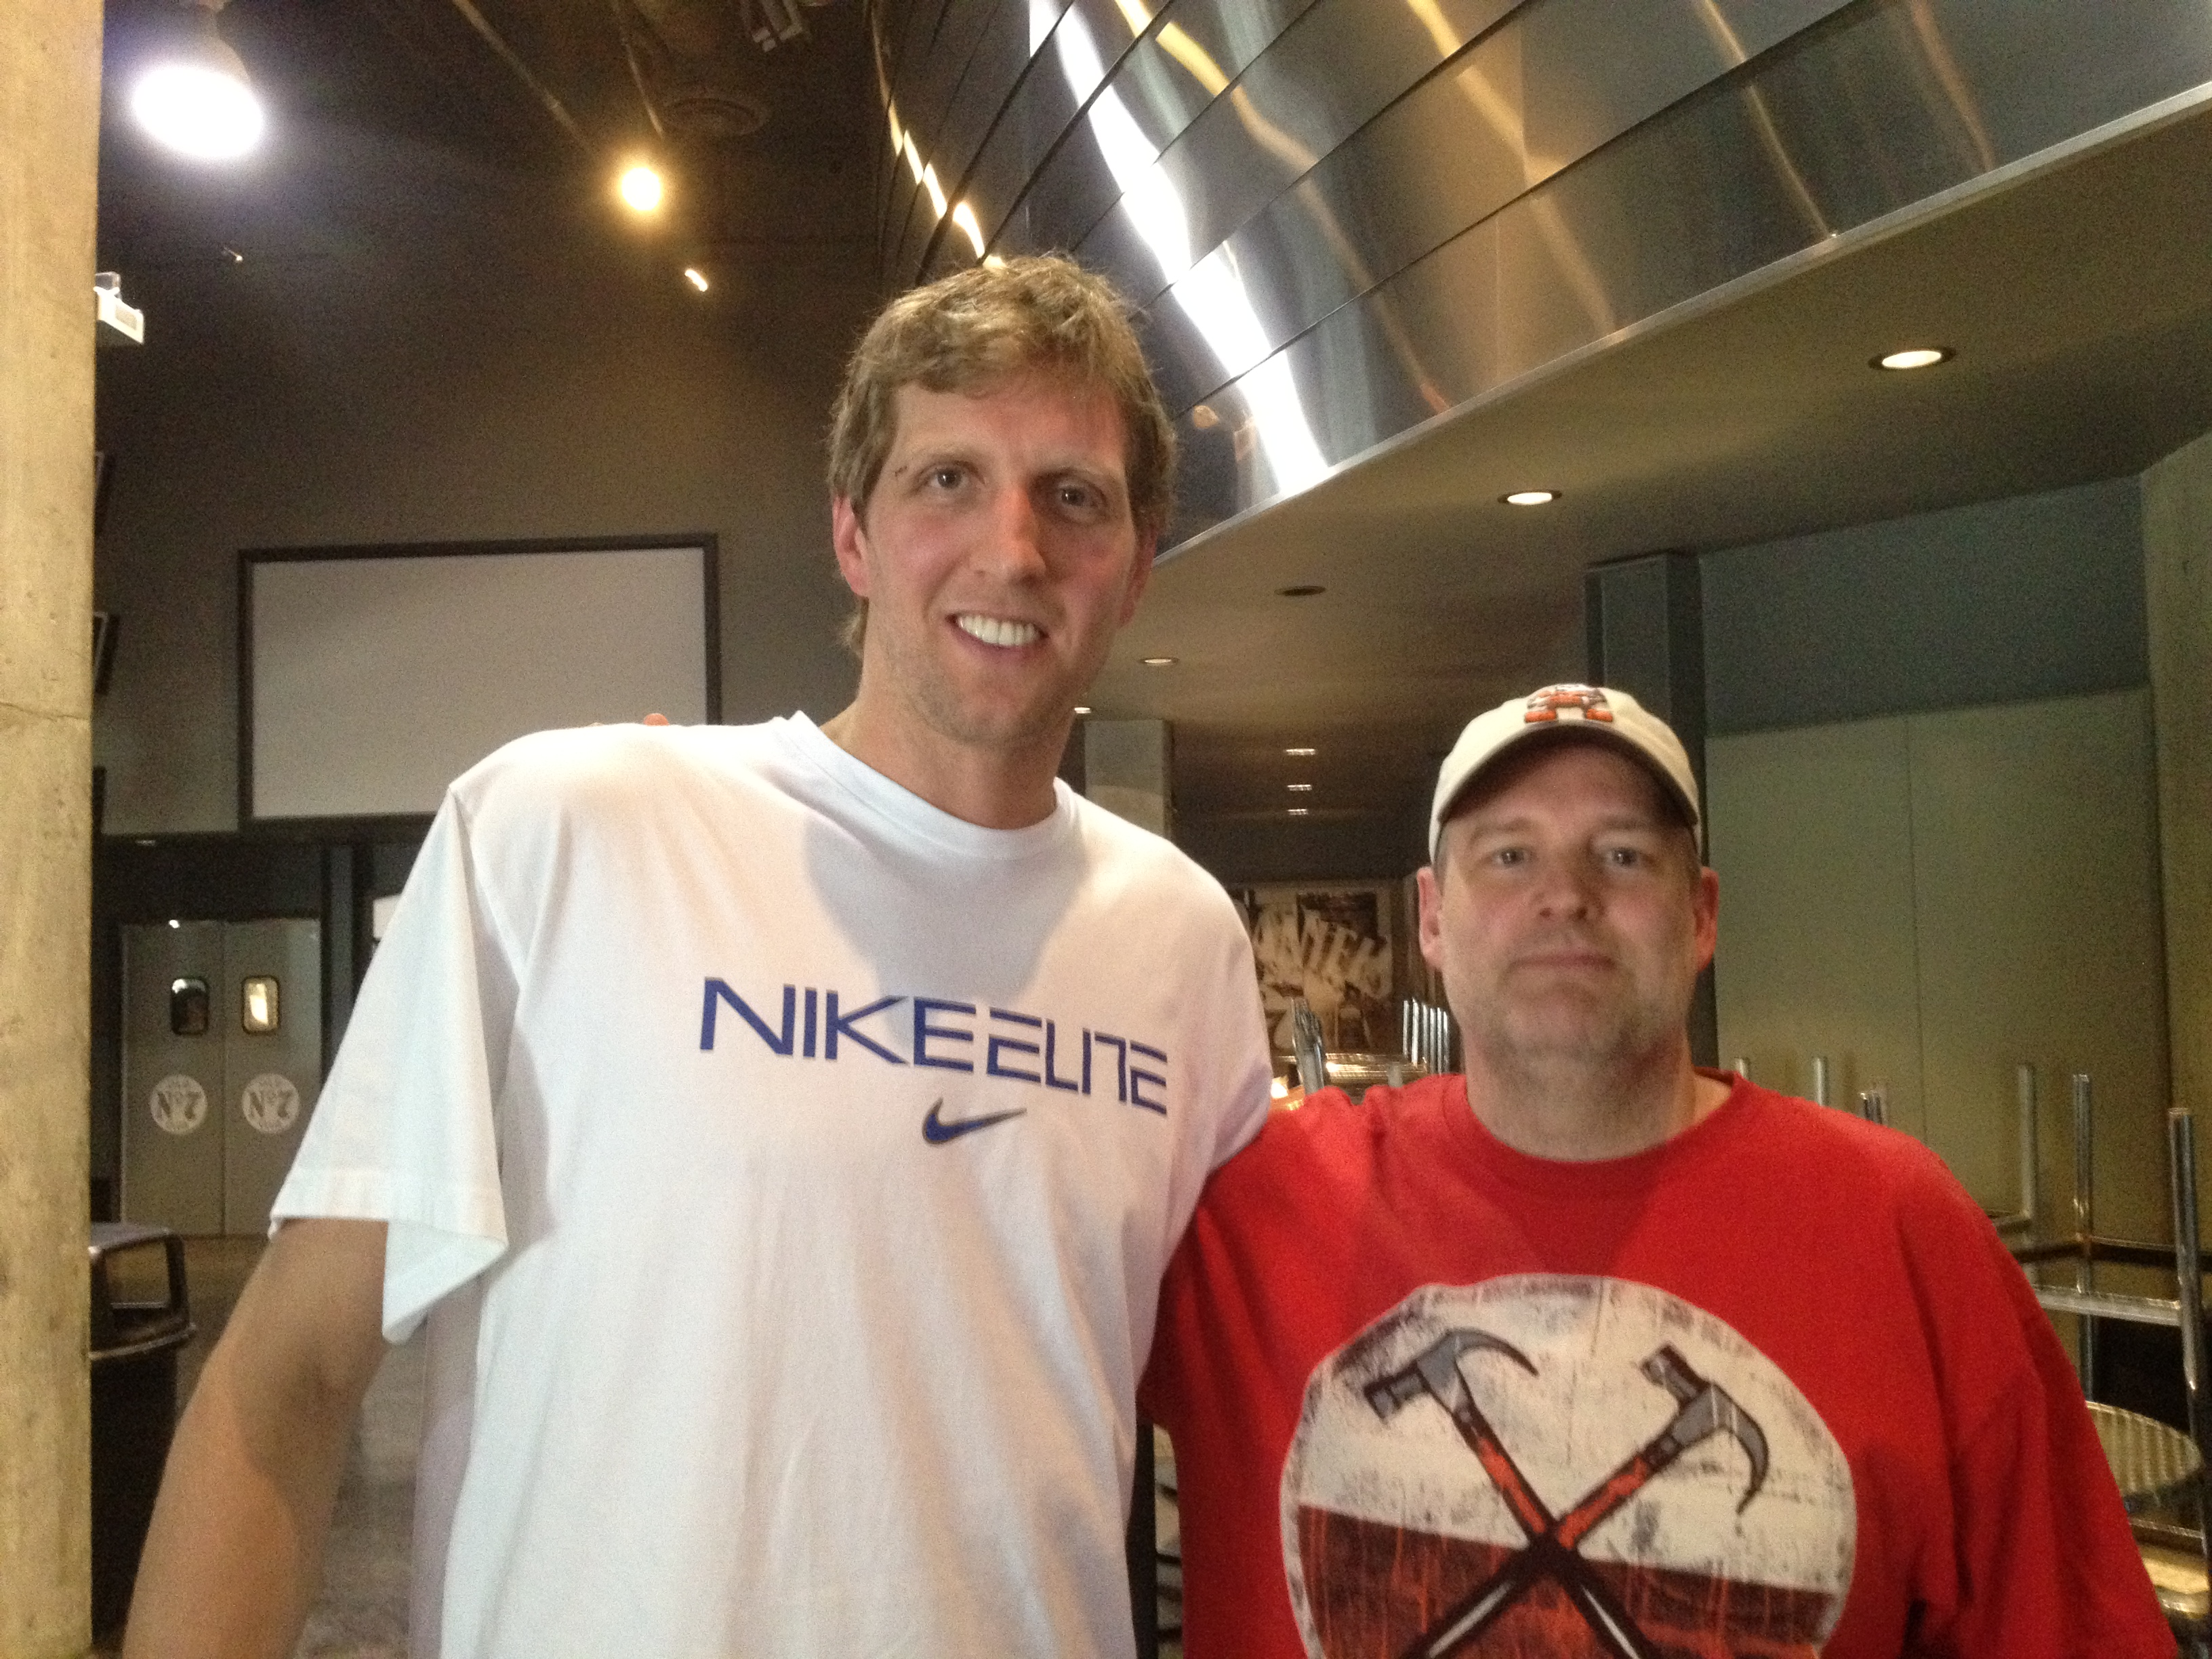 Dan and Dirk Nowitzki